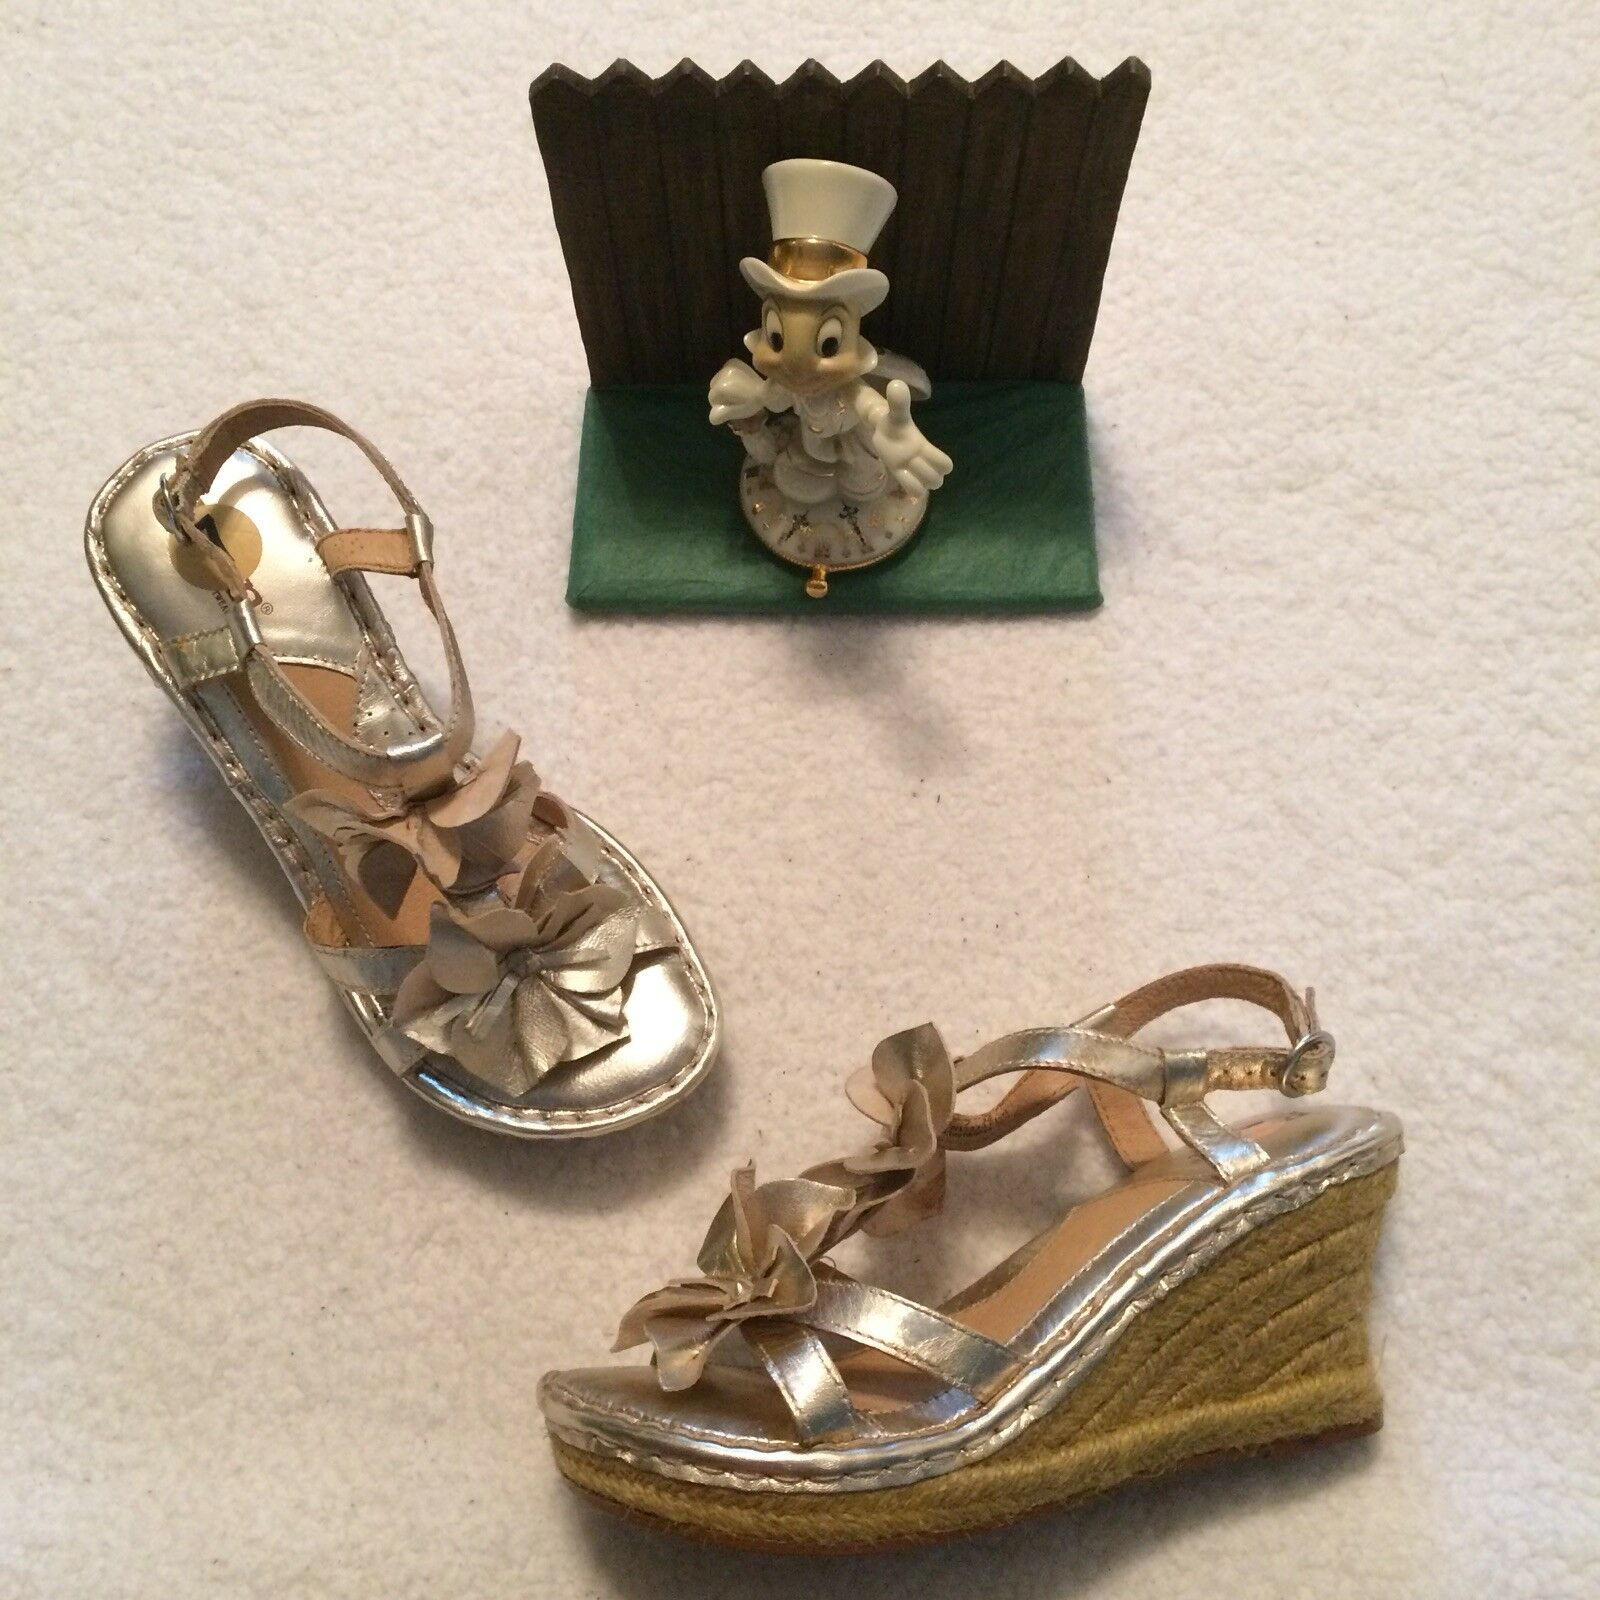 New J CREW 7 Tassel Sandal Gray Green Silver Neon T Strap Career Party leather